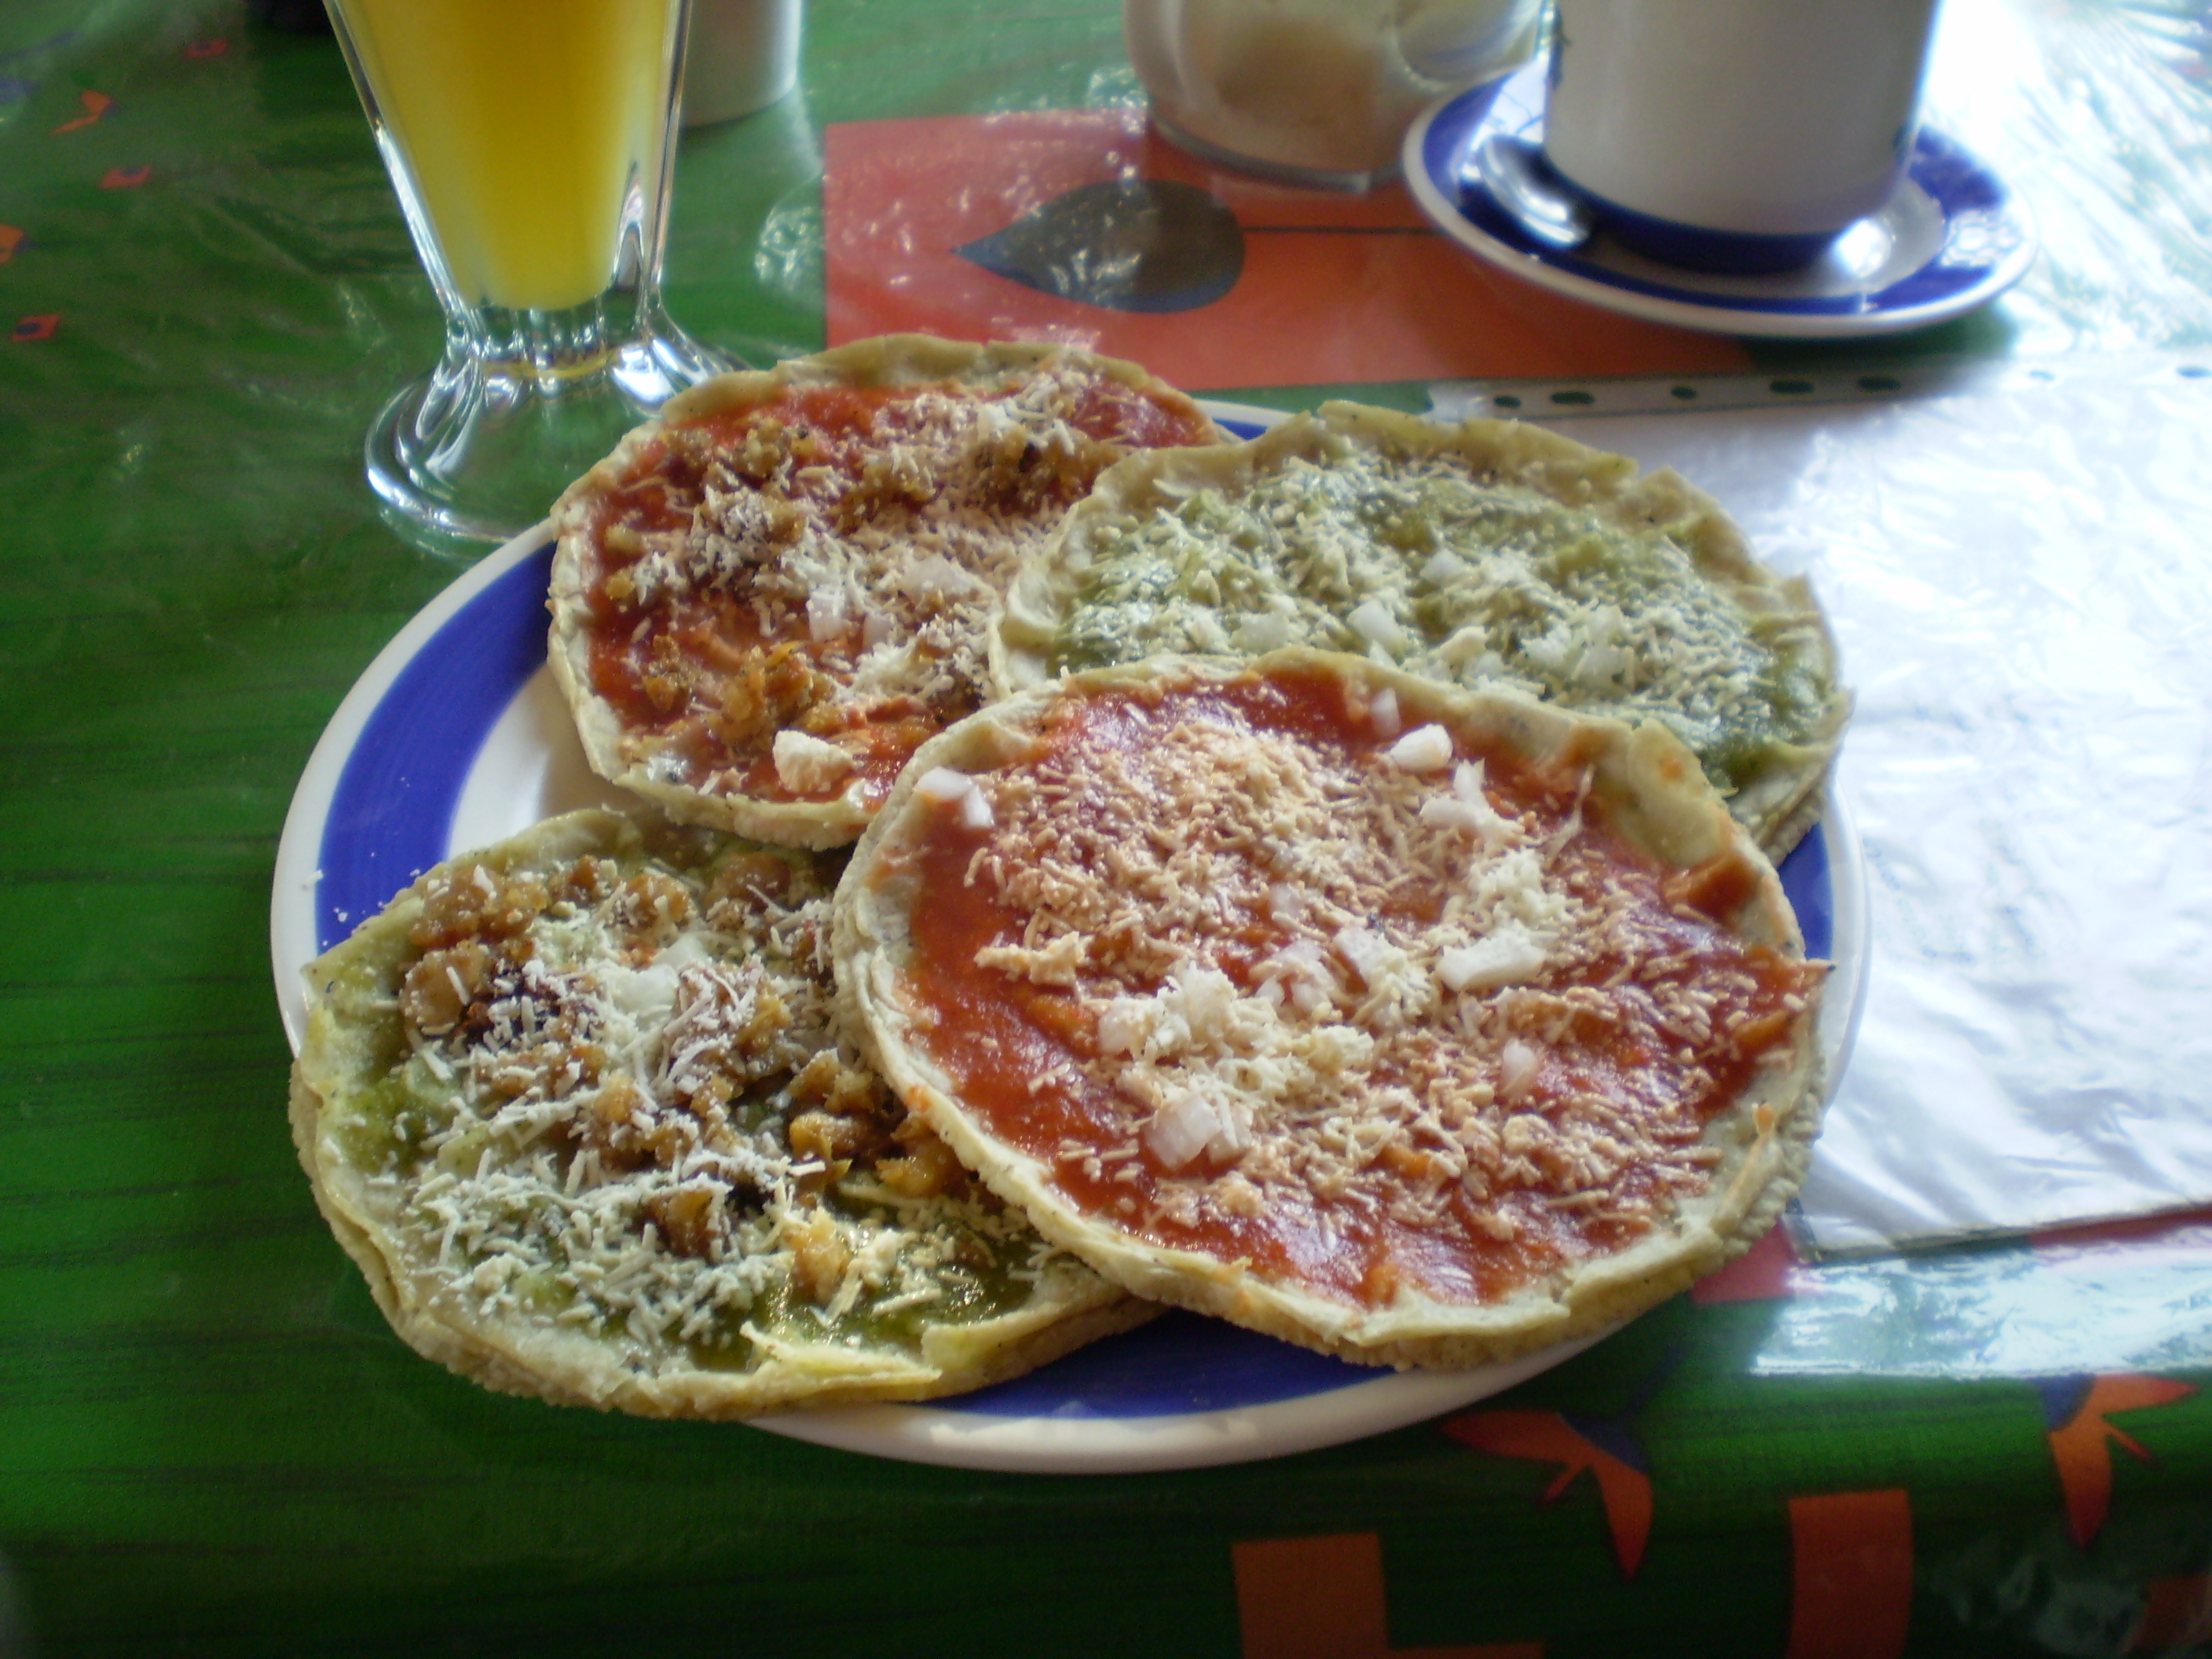 File:Mexican sopes.jpg - Wikimedia Commons